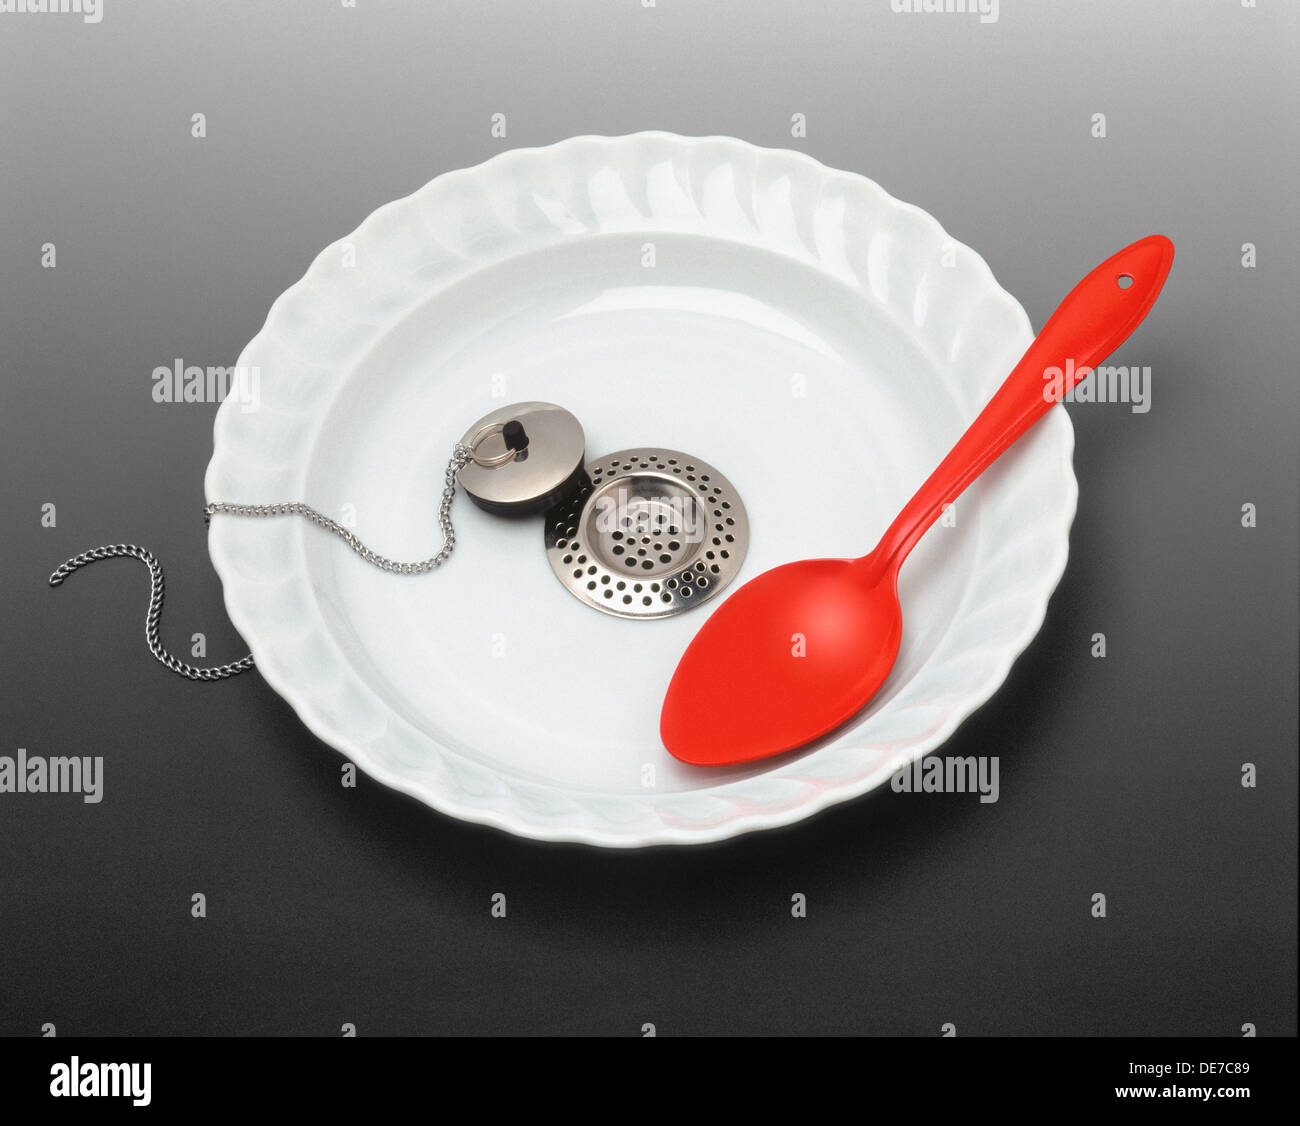 Empty plate with red spoon - Stock Image